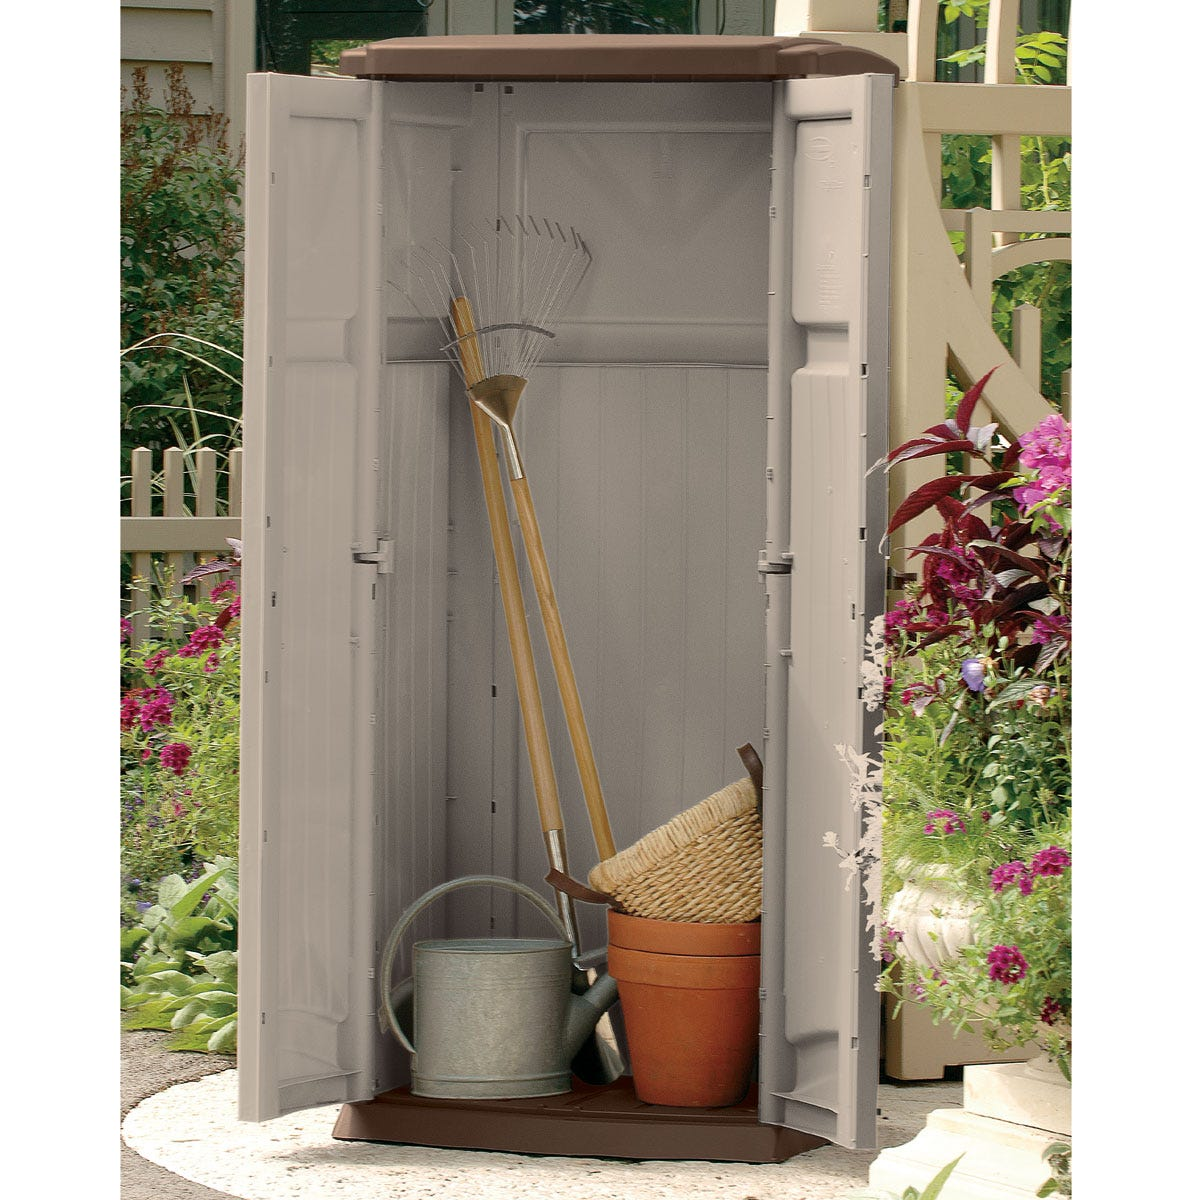 Garden tool shed from sporty 39 s tool shop for Garden shed january sale